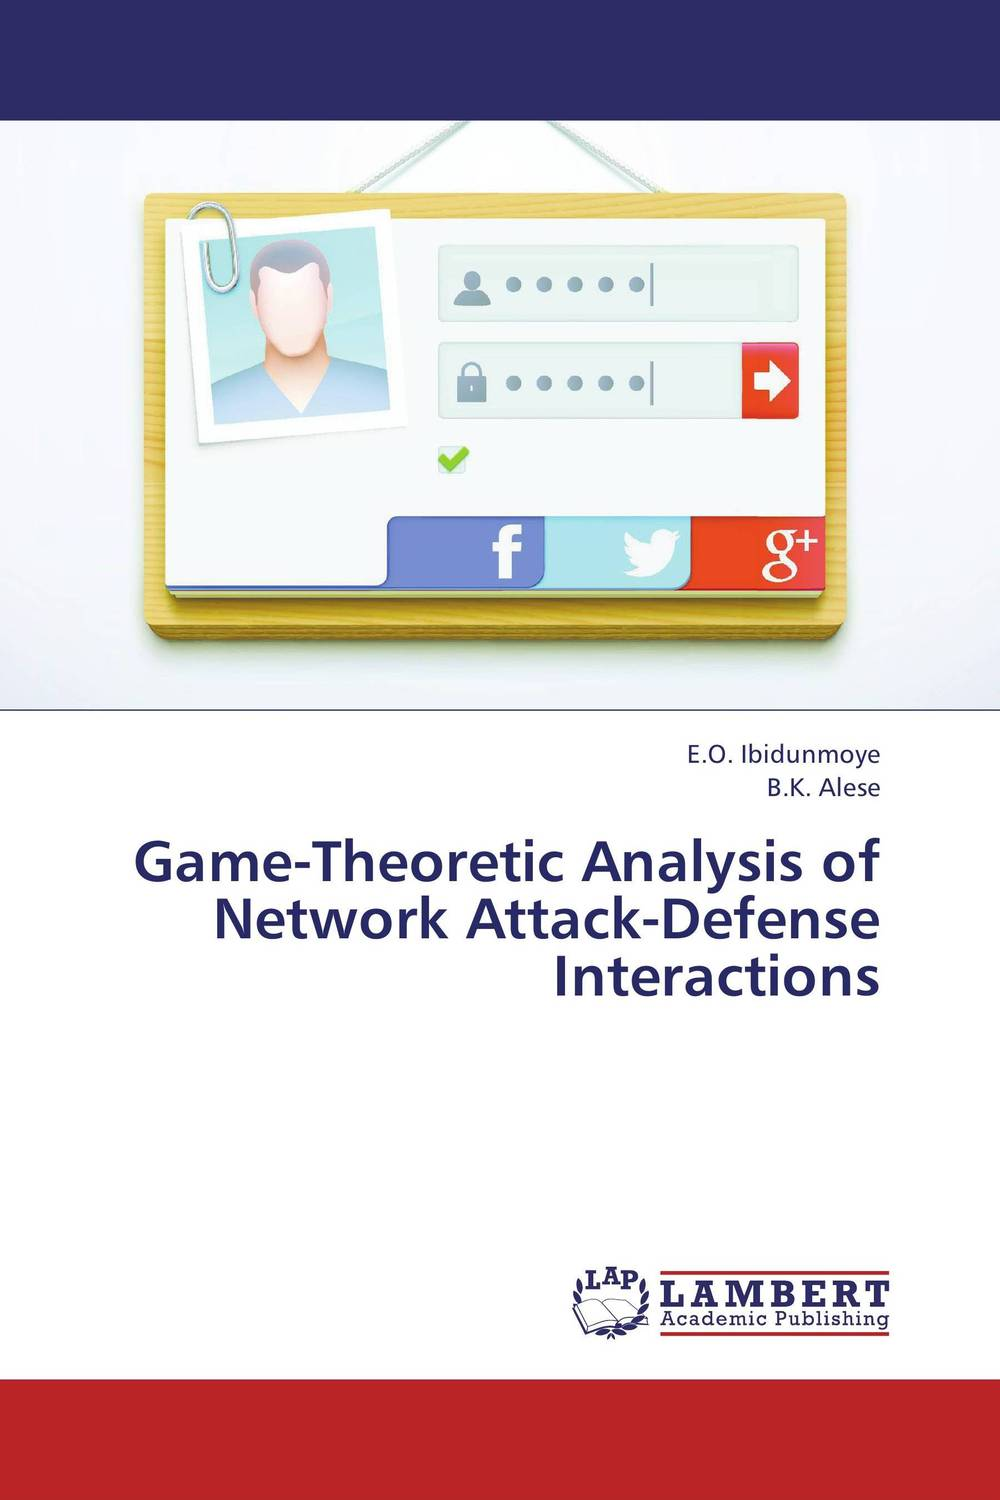 Game-Theoretic Analysis of Network Attack-Defense Interactions mirfa manzoor hina alvi and naila hayat documentation of two package game